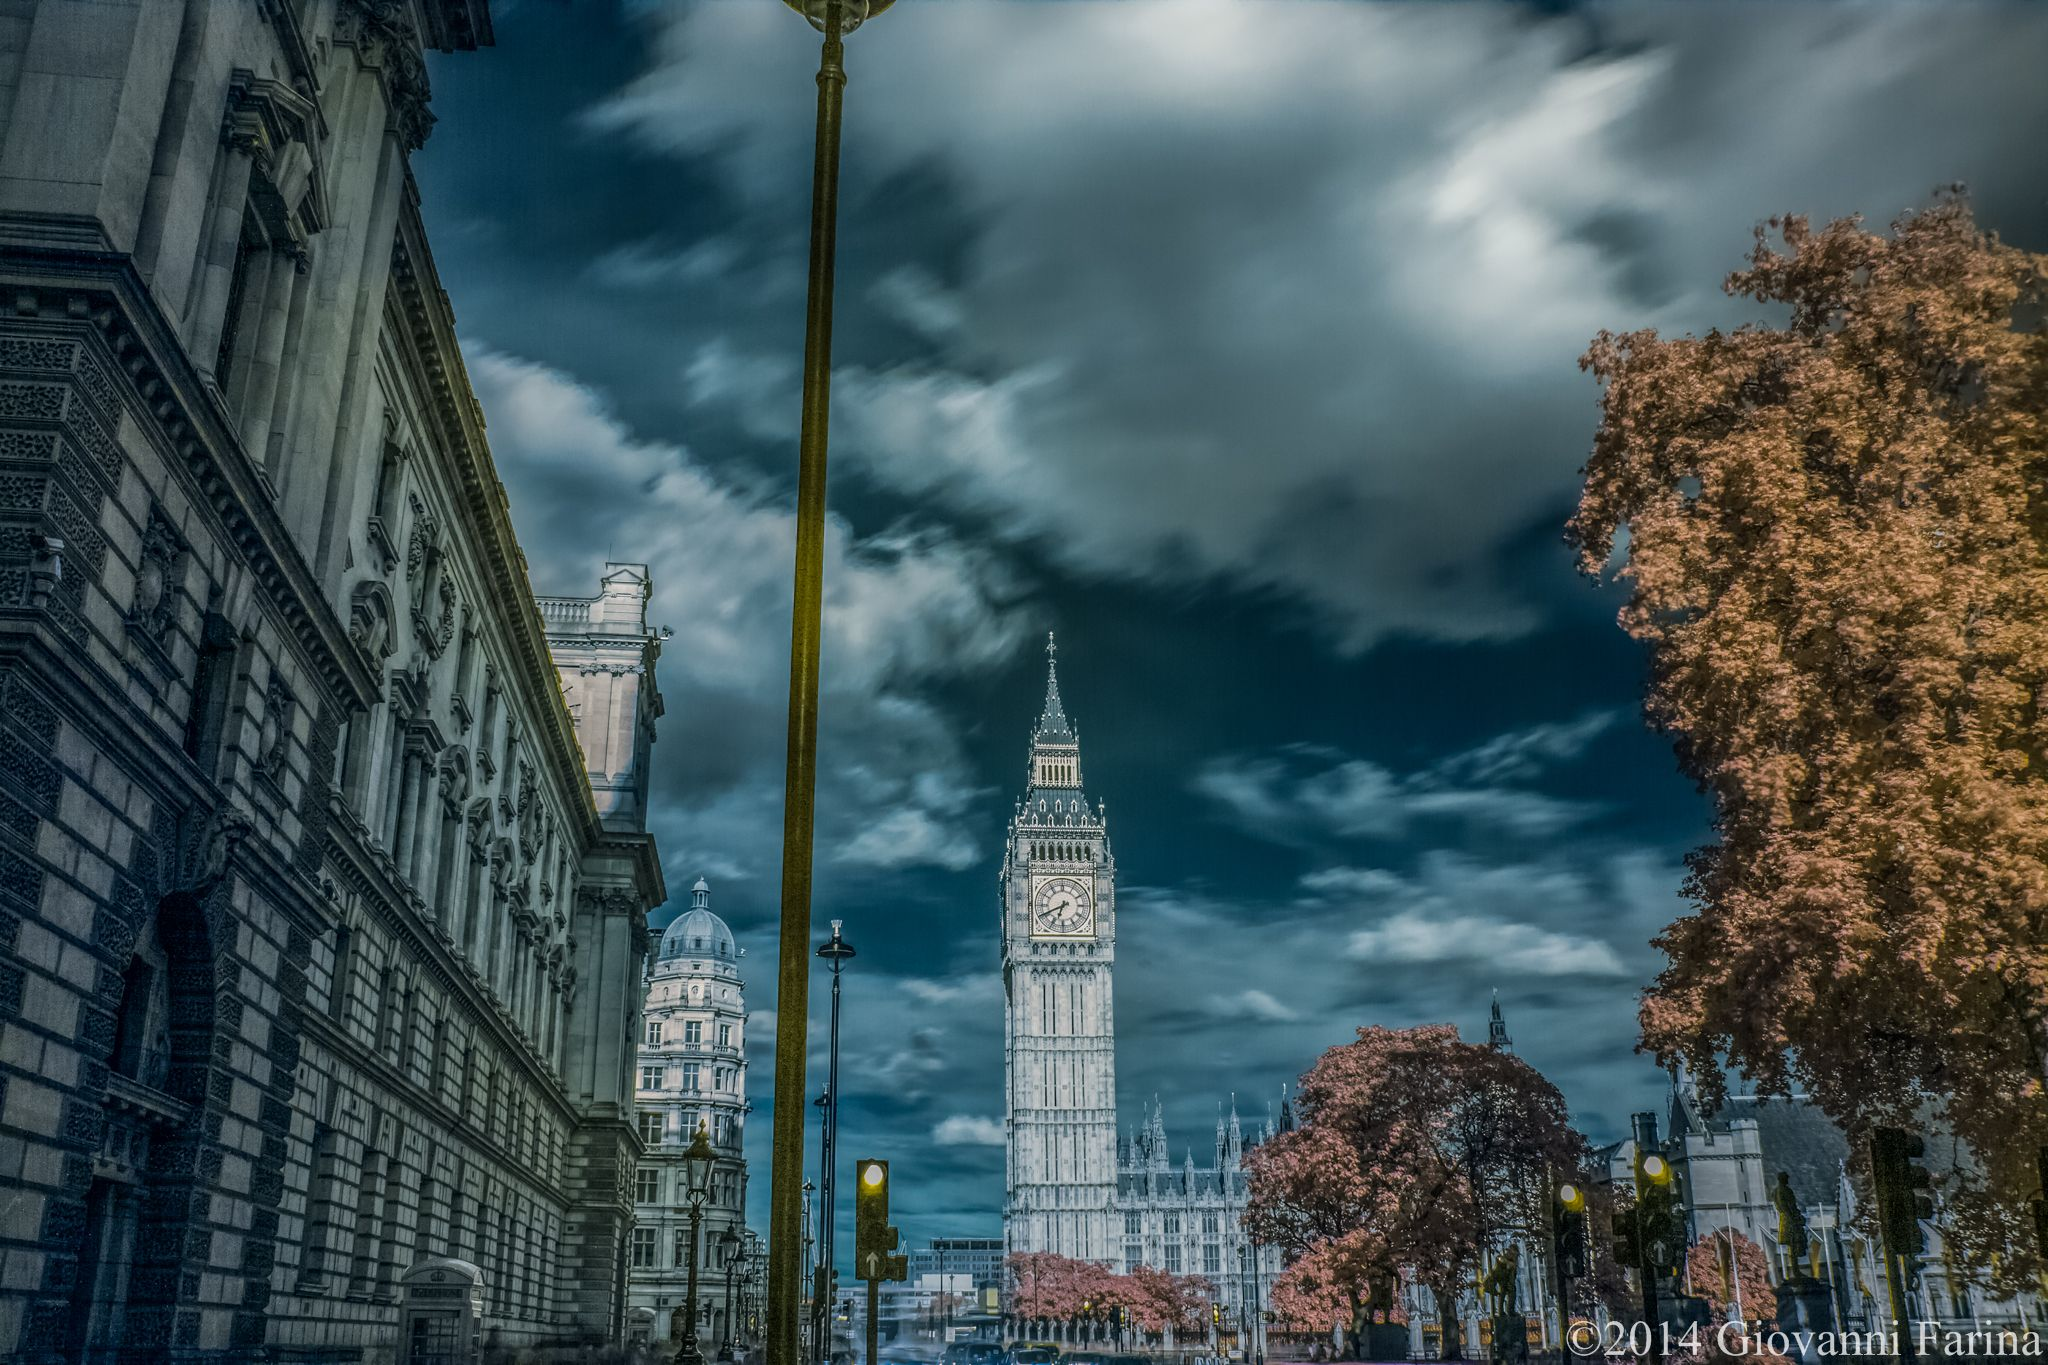 westminster(first one) v2 by Giovanni Farina